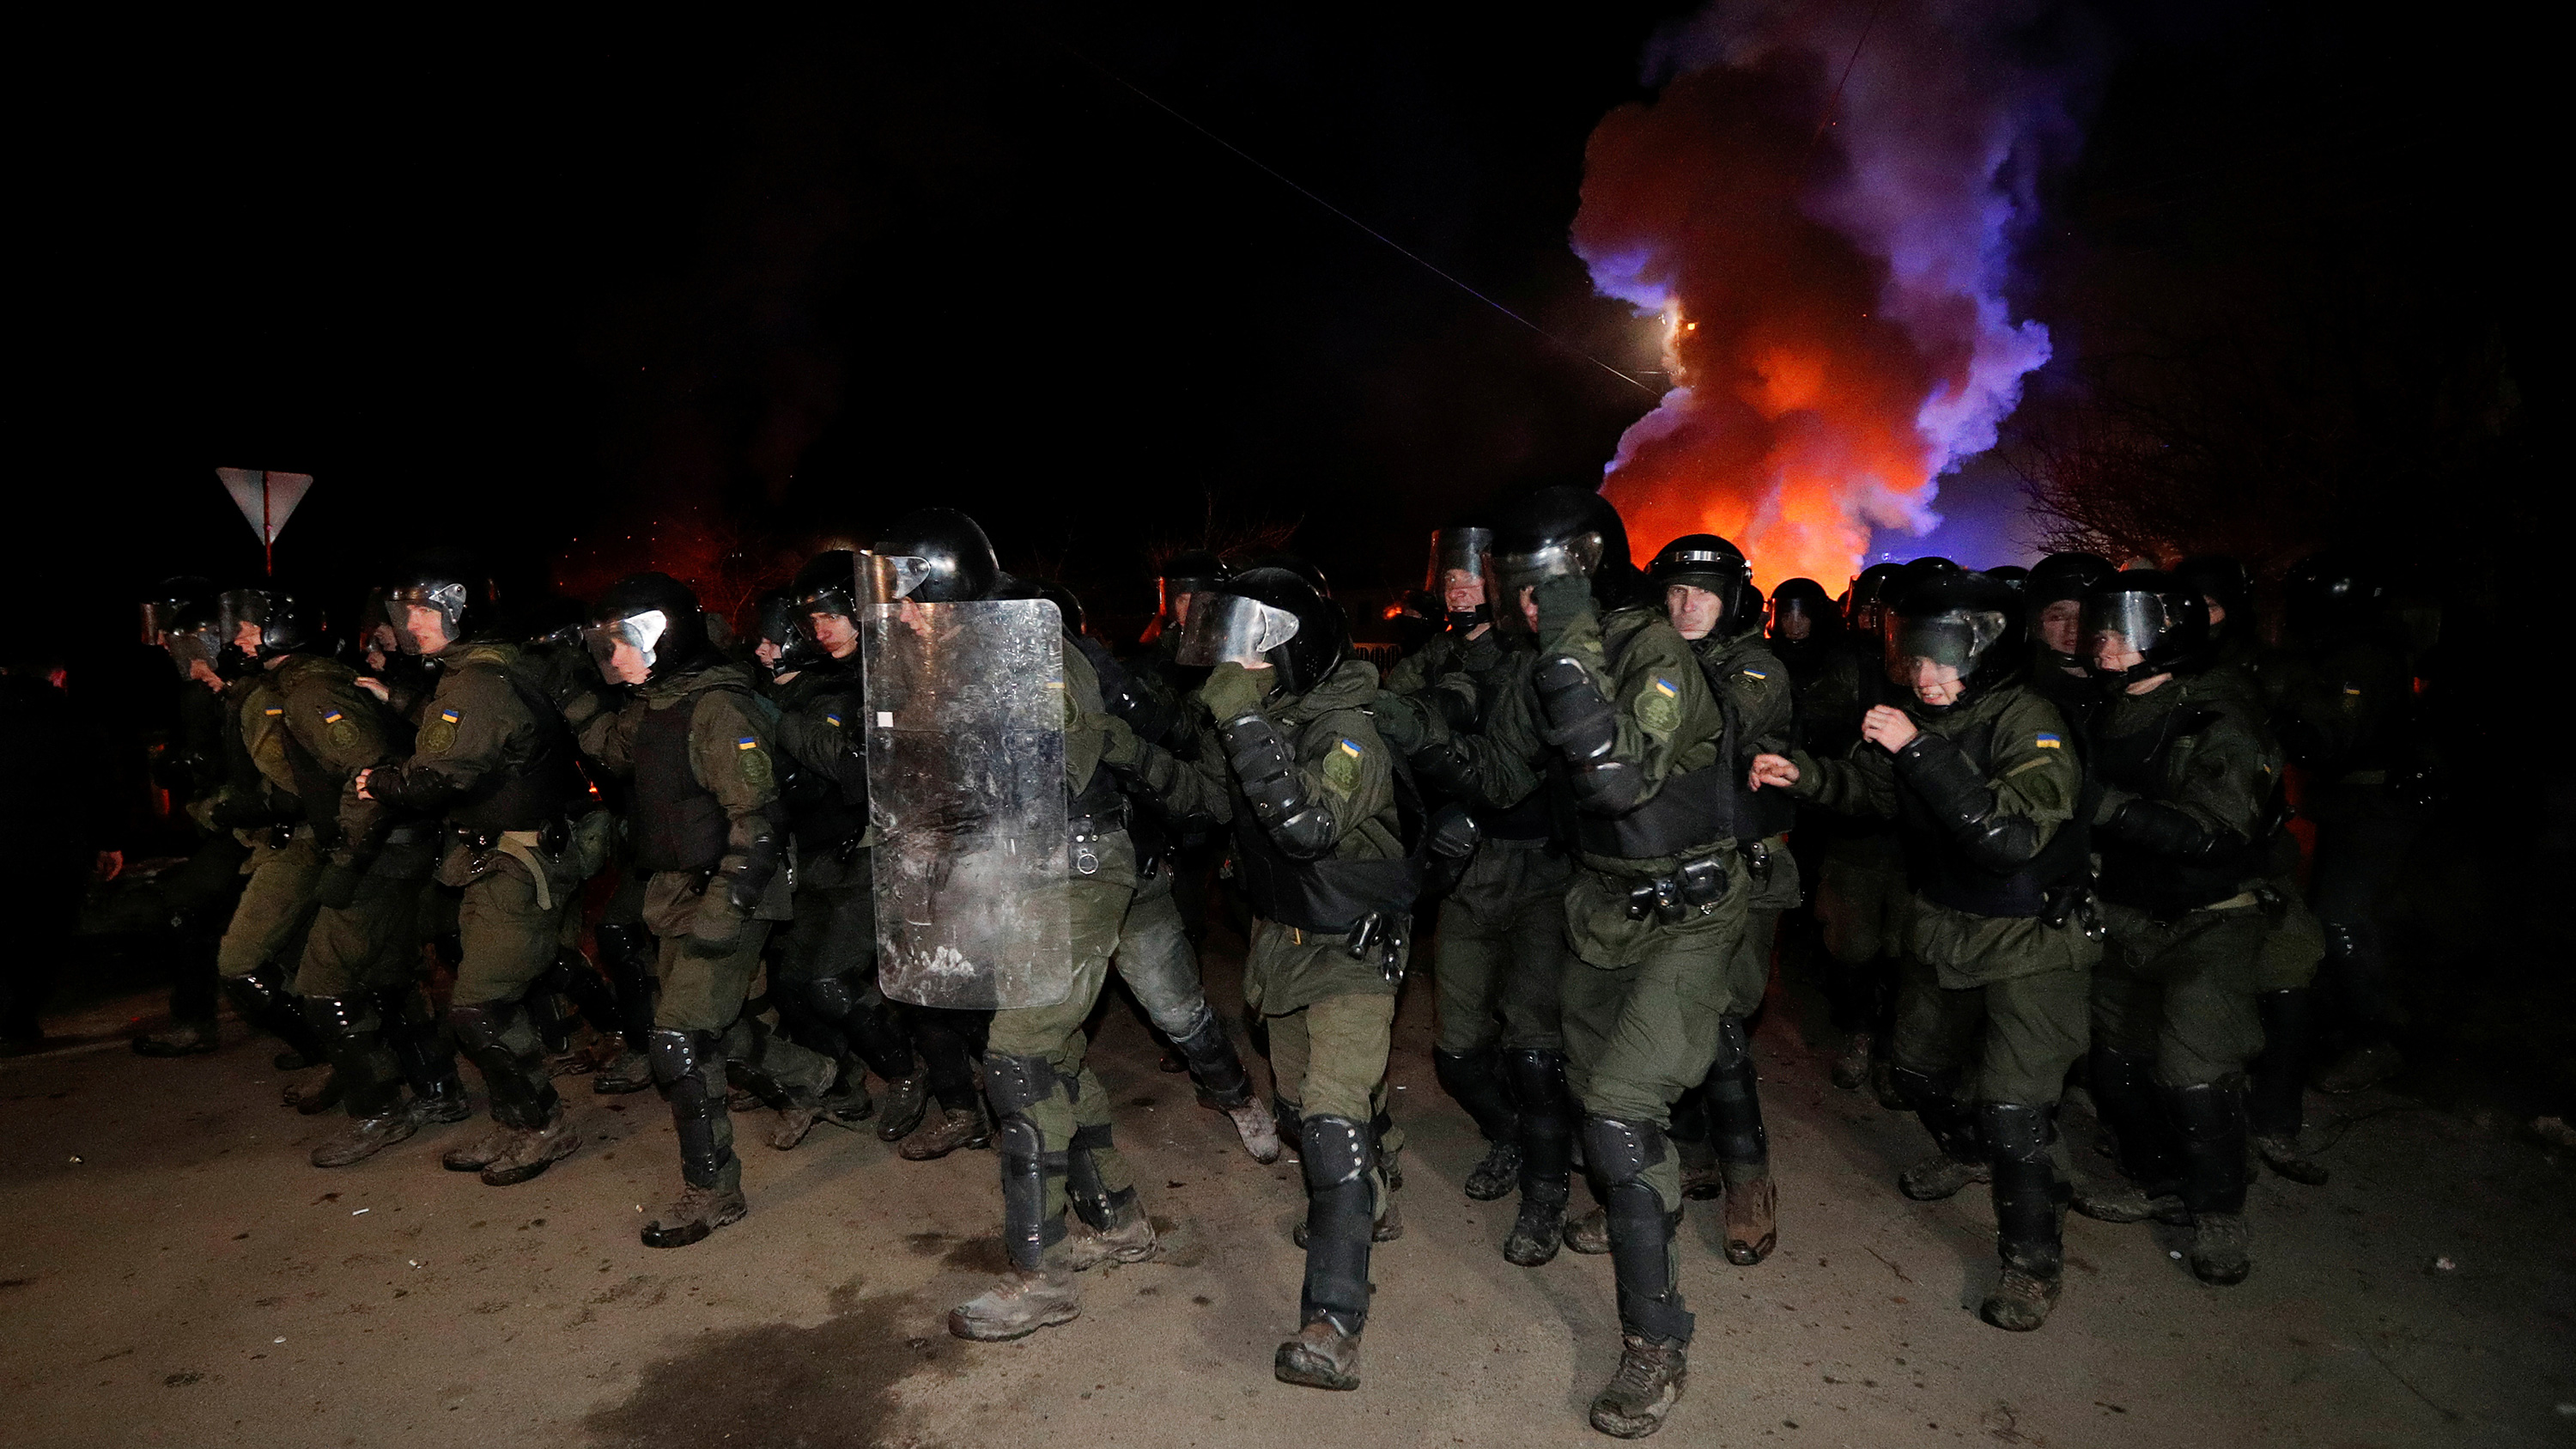 Picture shows more than a dozen officers wearing full riot gear advancing toward the camera at night. Behind them smoke rises and is illuminated by bright orange and blue light, presumably from a police vehicle off camera. This is a stunning photo.